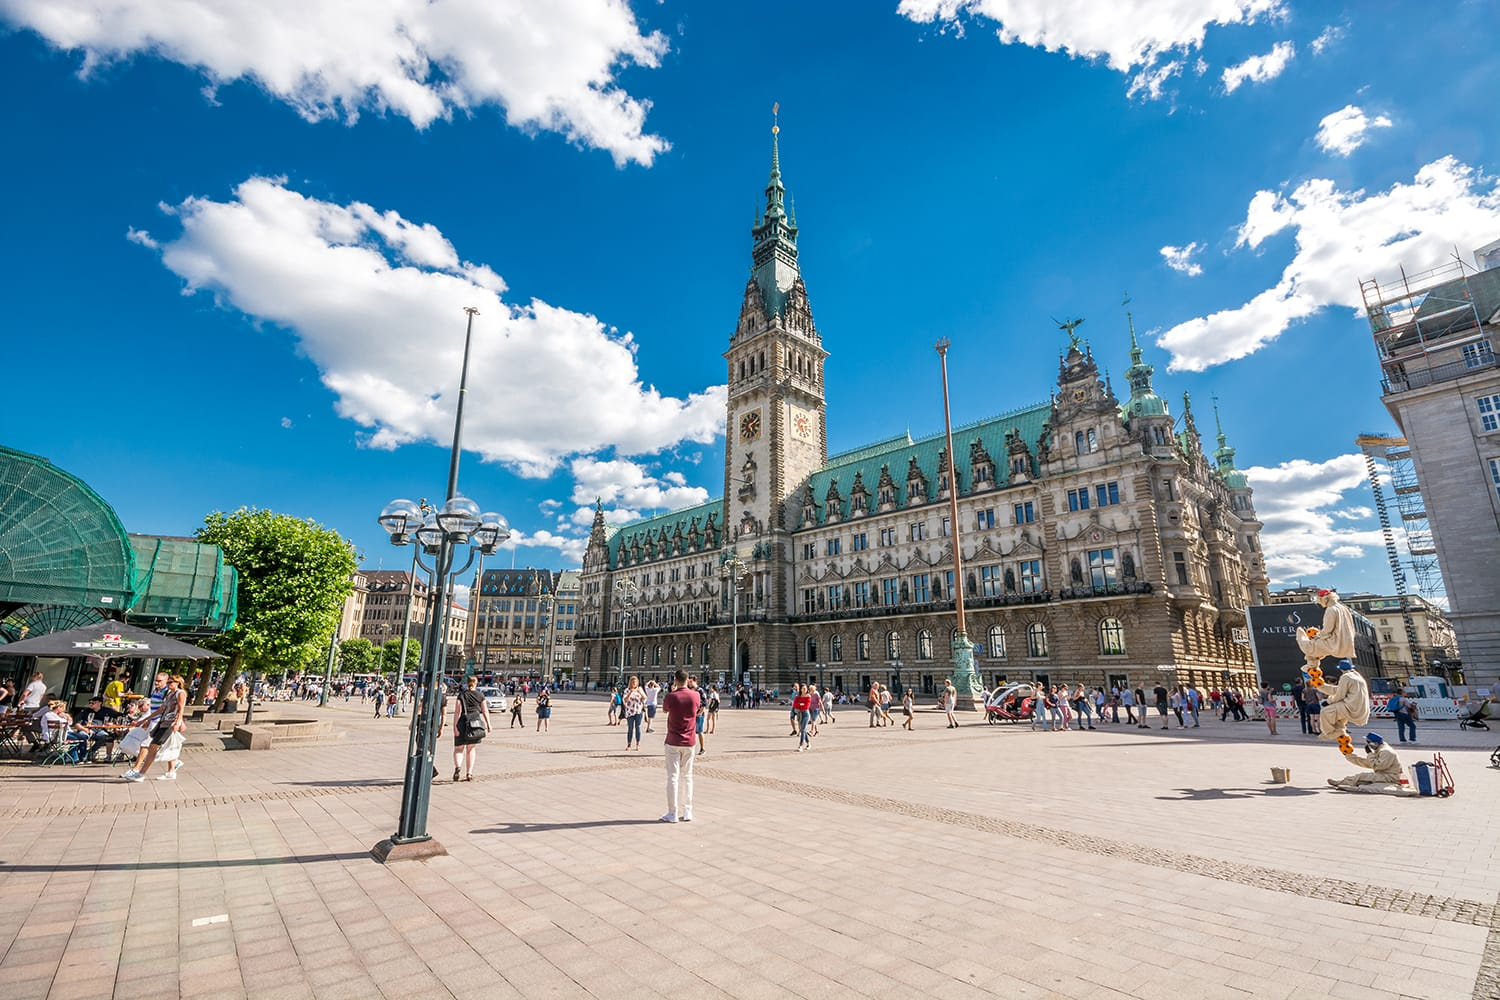 Hamburg City Hall is the seat of local government of the Free and Hanseatic City of Hamburg, Germany